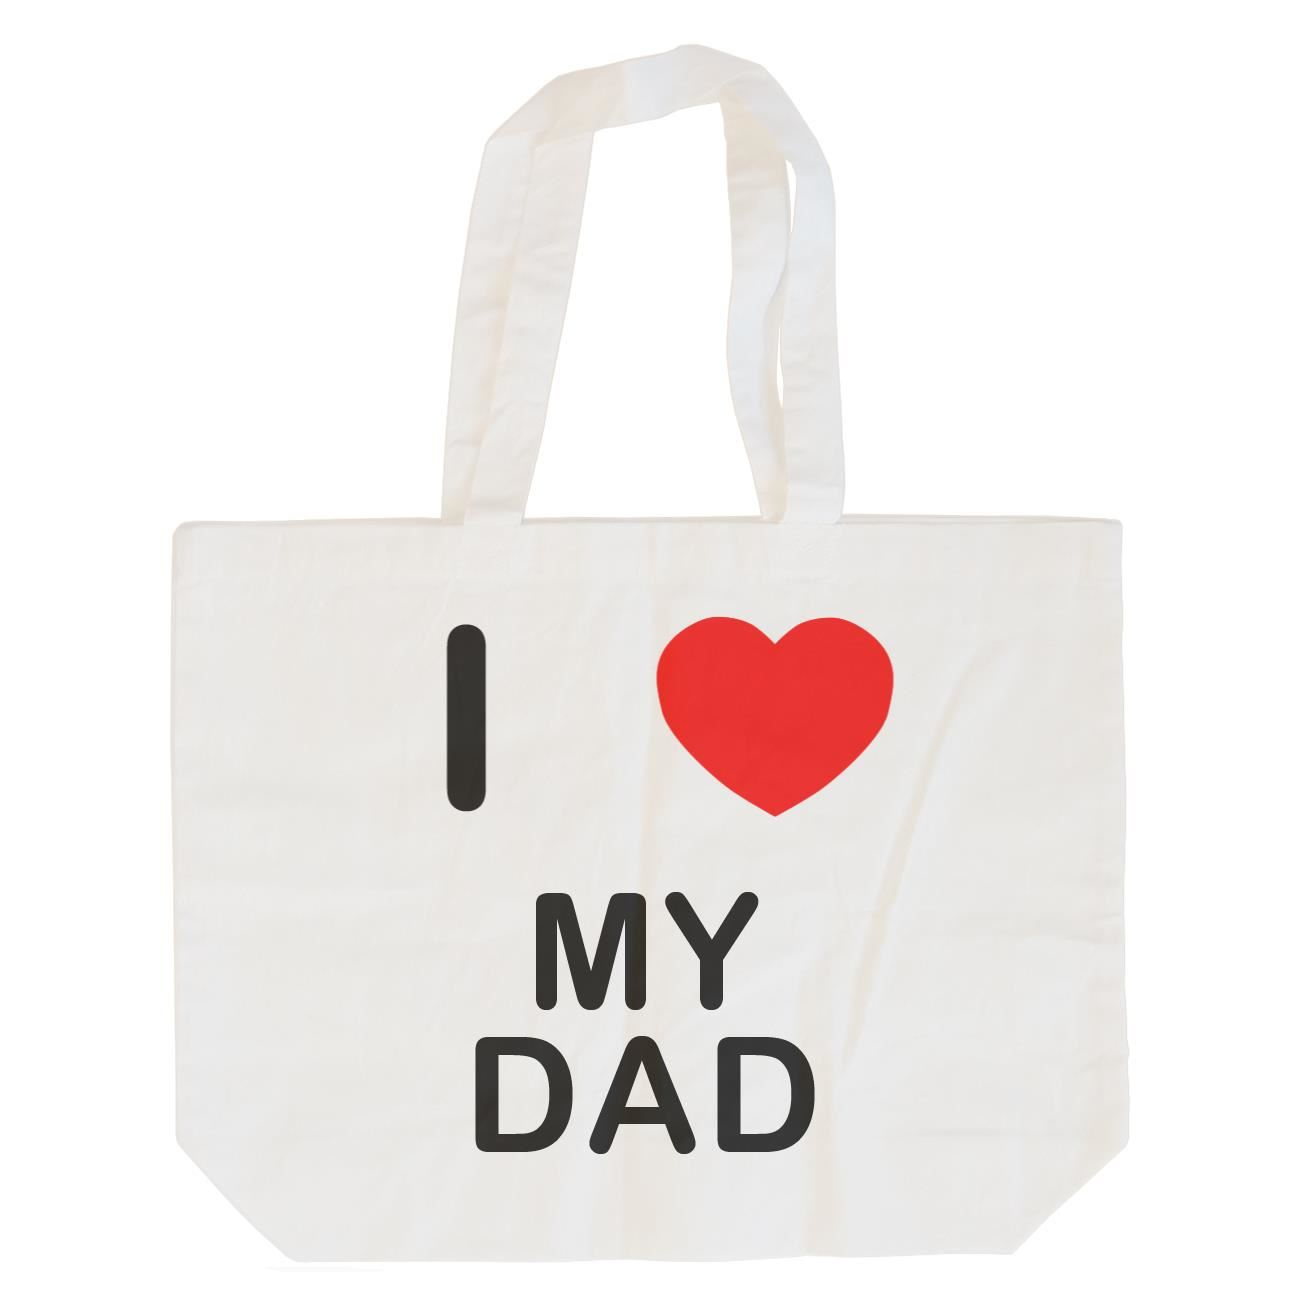 I Love My Dad - Cotton Bag | Size choice Tote, Shopper or Sling